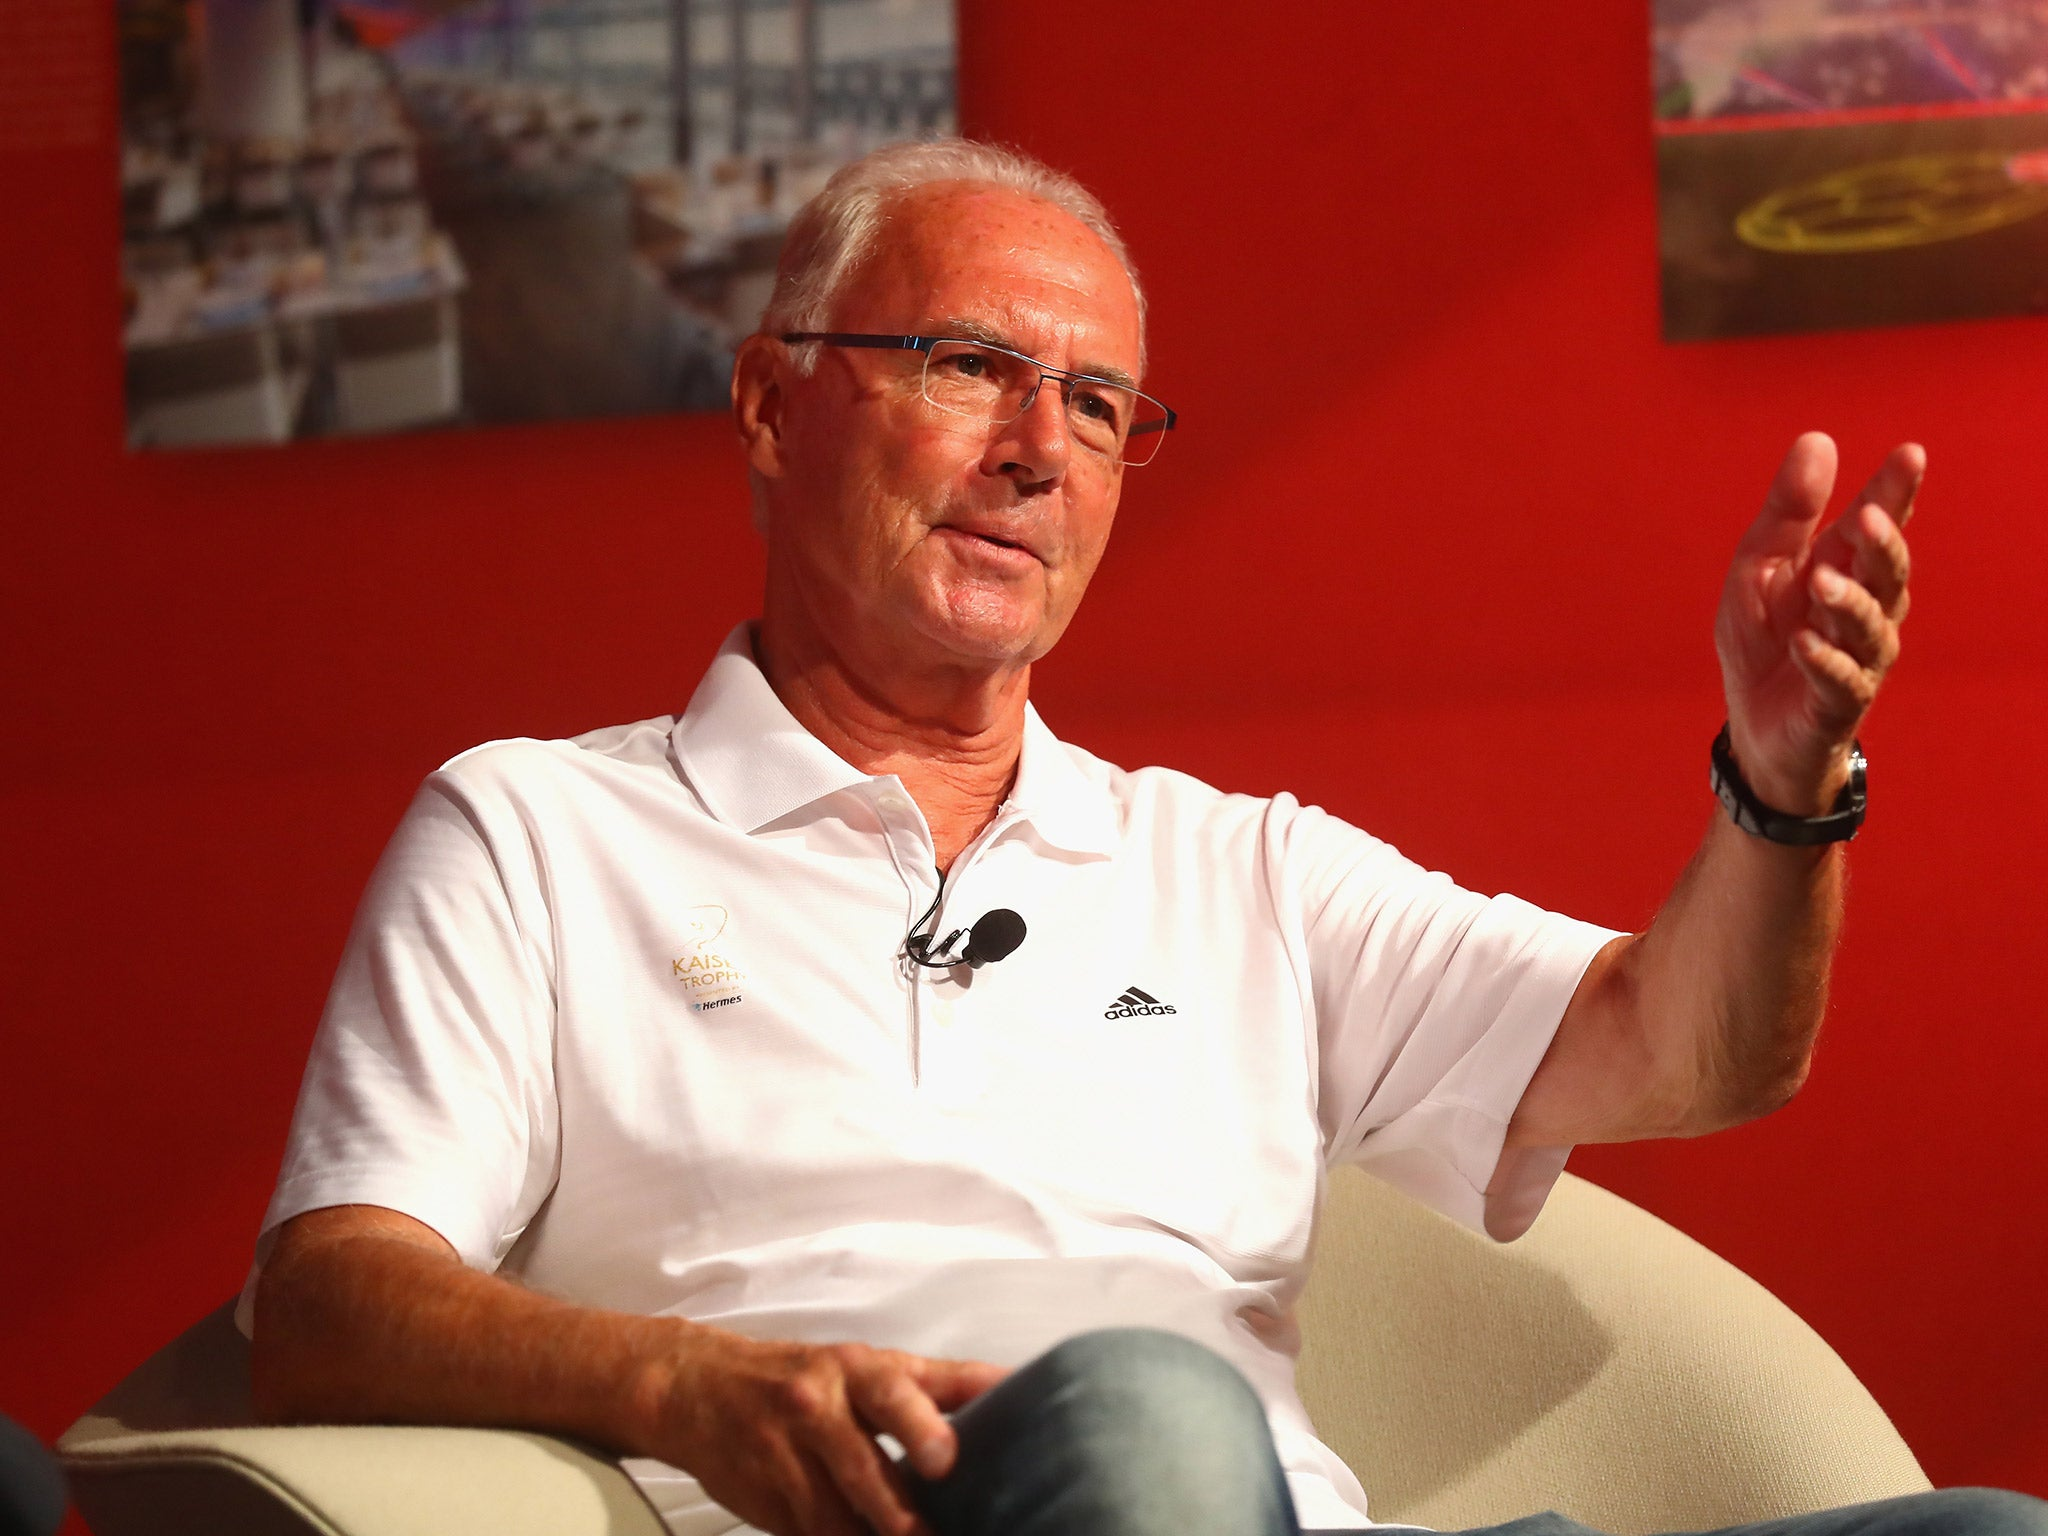 e of football s all time greats Franz Beckenbauer s legacy now